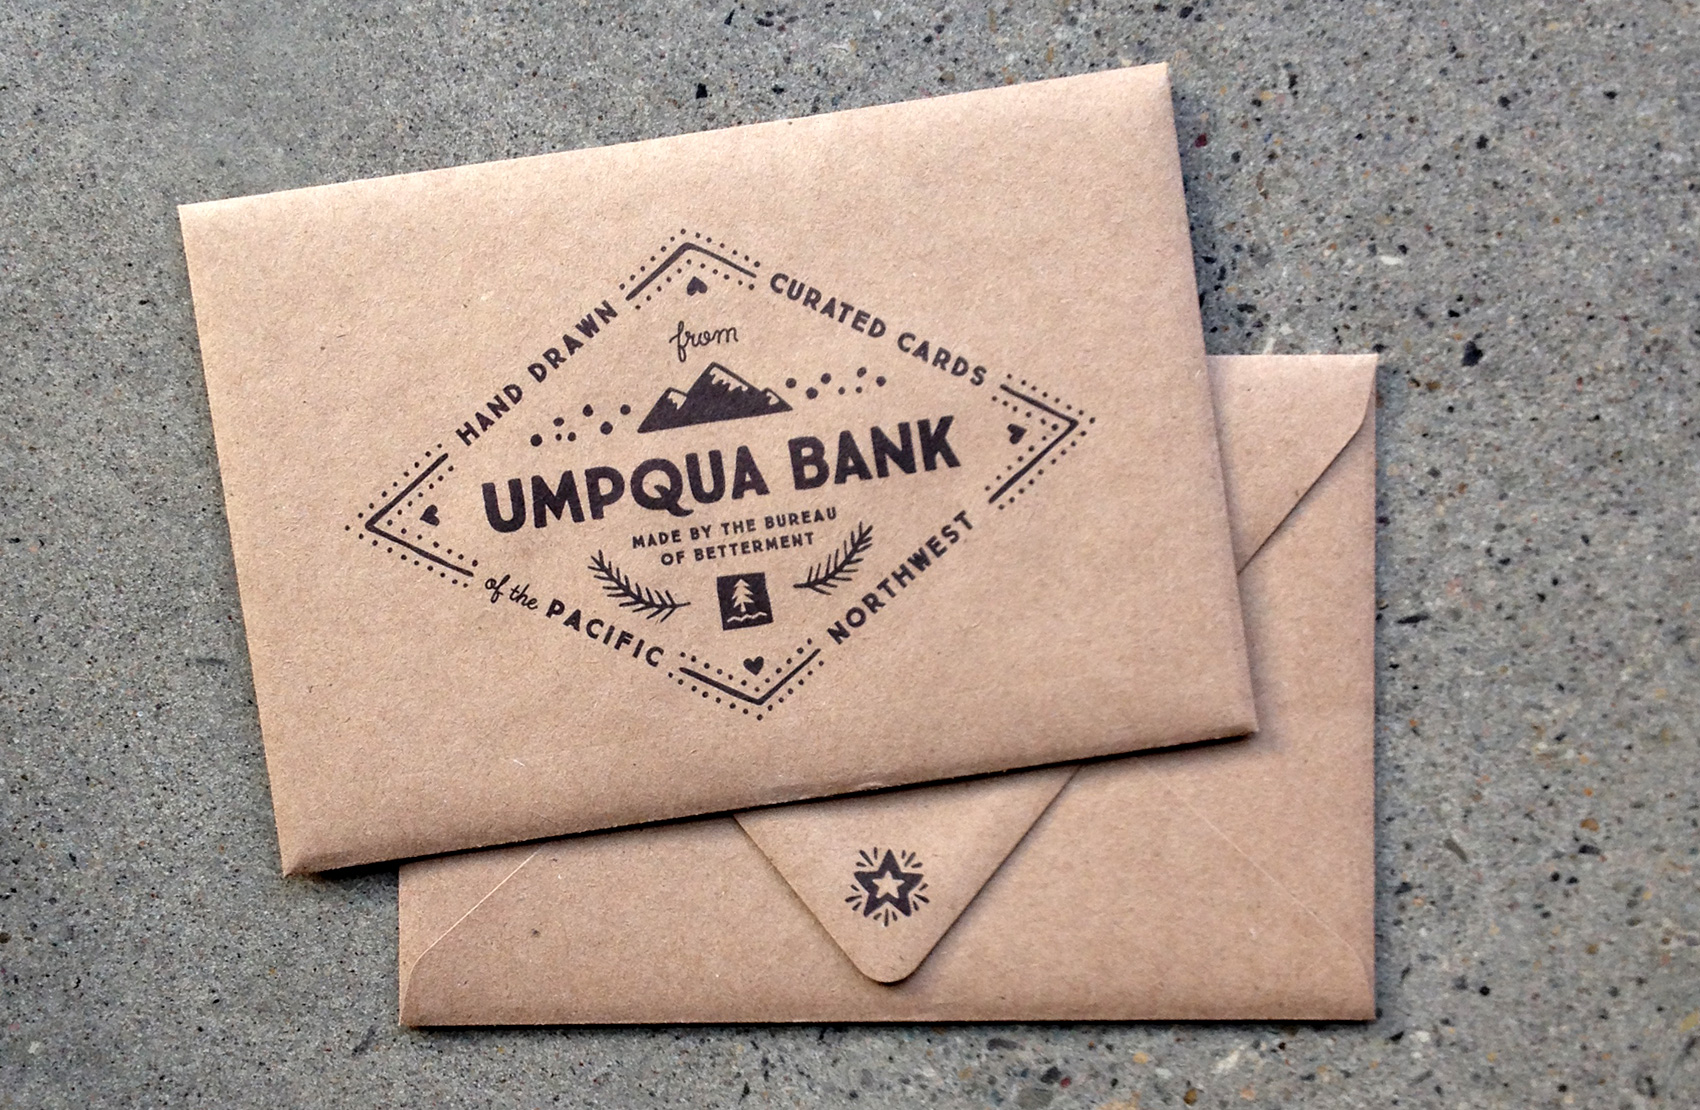 umpqua bank postcard envelope design